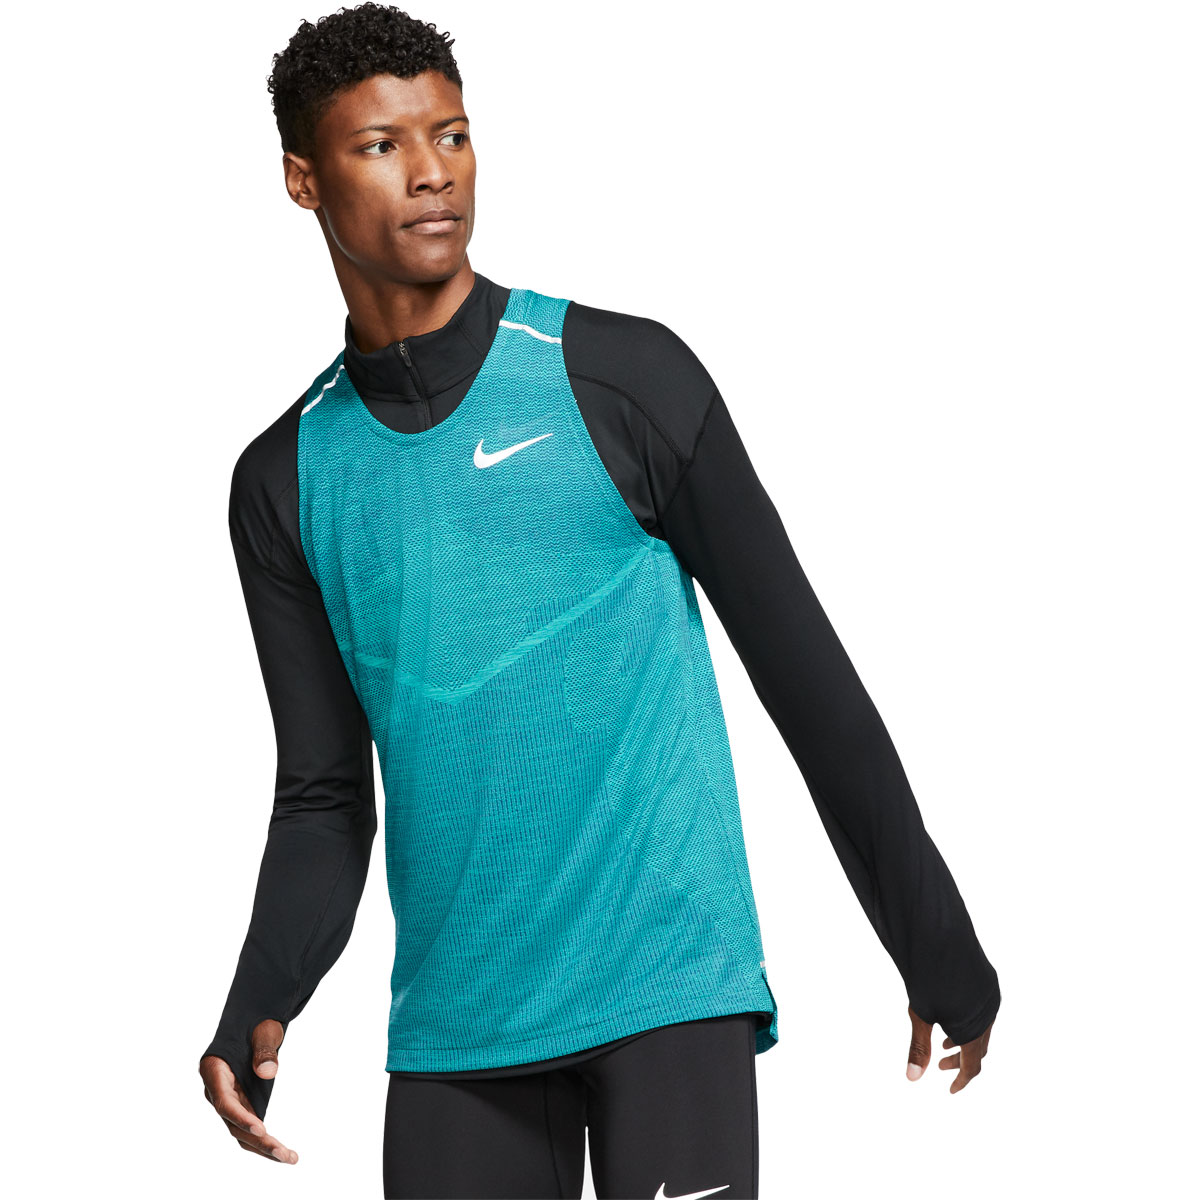 Men's Nike Techknit Ultra Tank Top - Color: Indigo Force - Size: XXL, Indigo Force, large, image 1